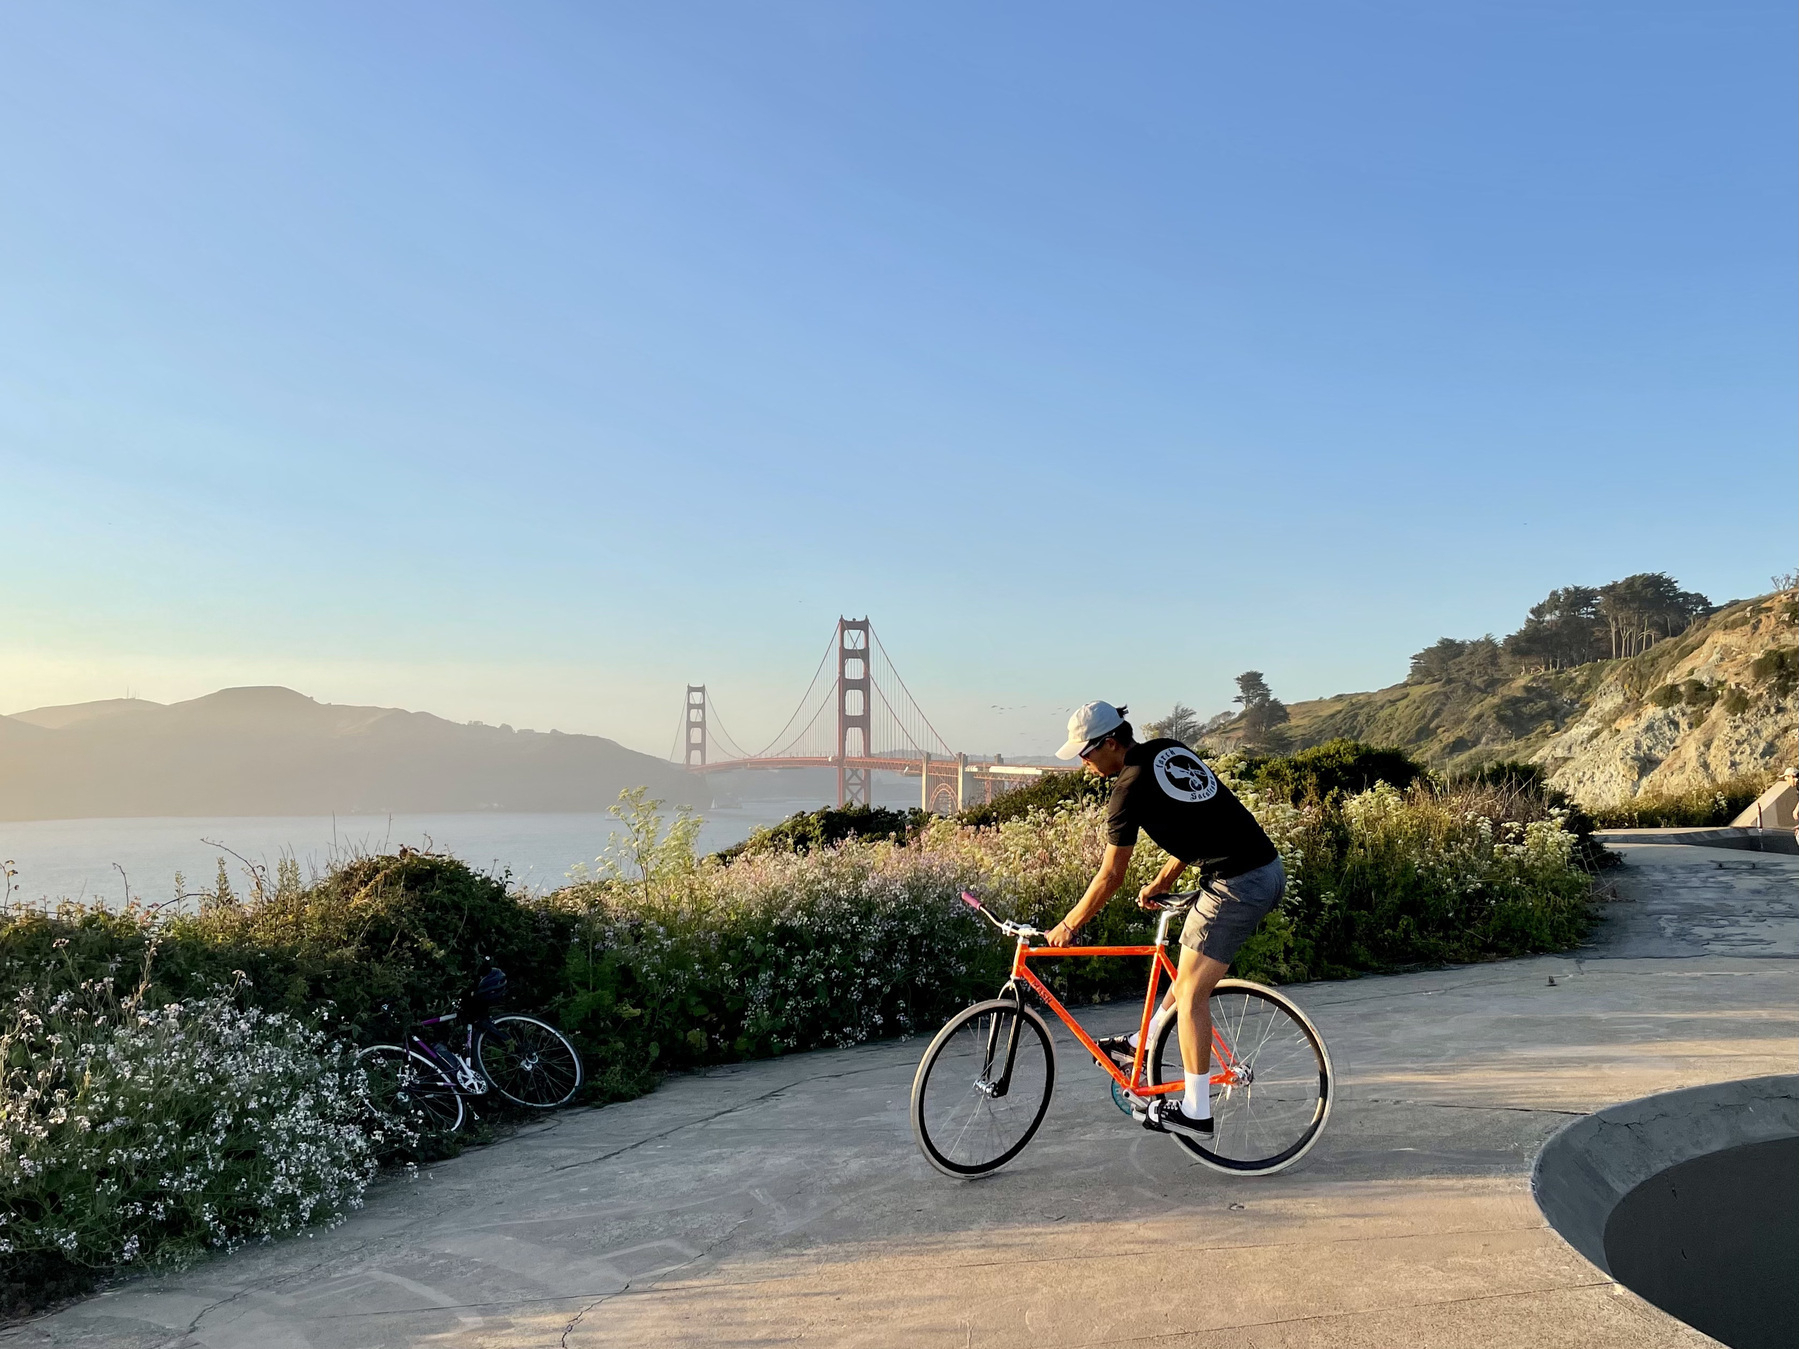 A man on an orange bicycle doing a trick with the Golden Gate Bridge in the background